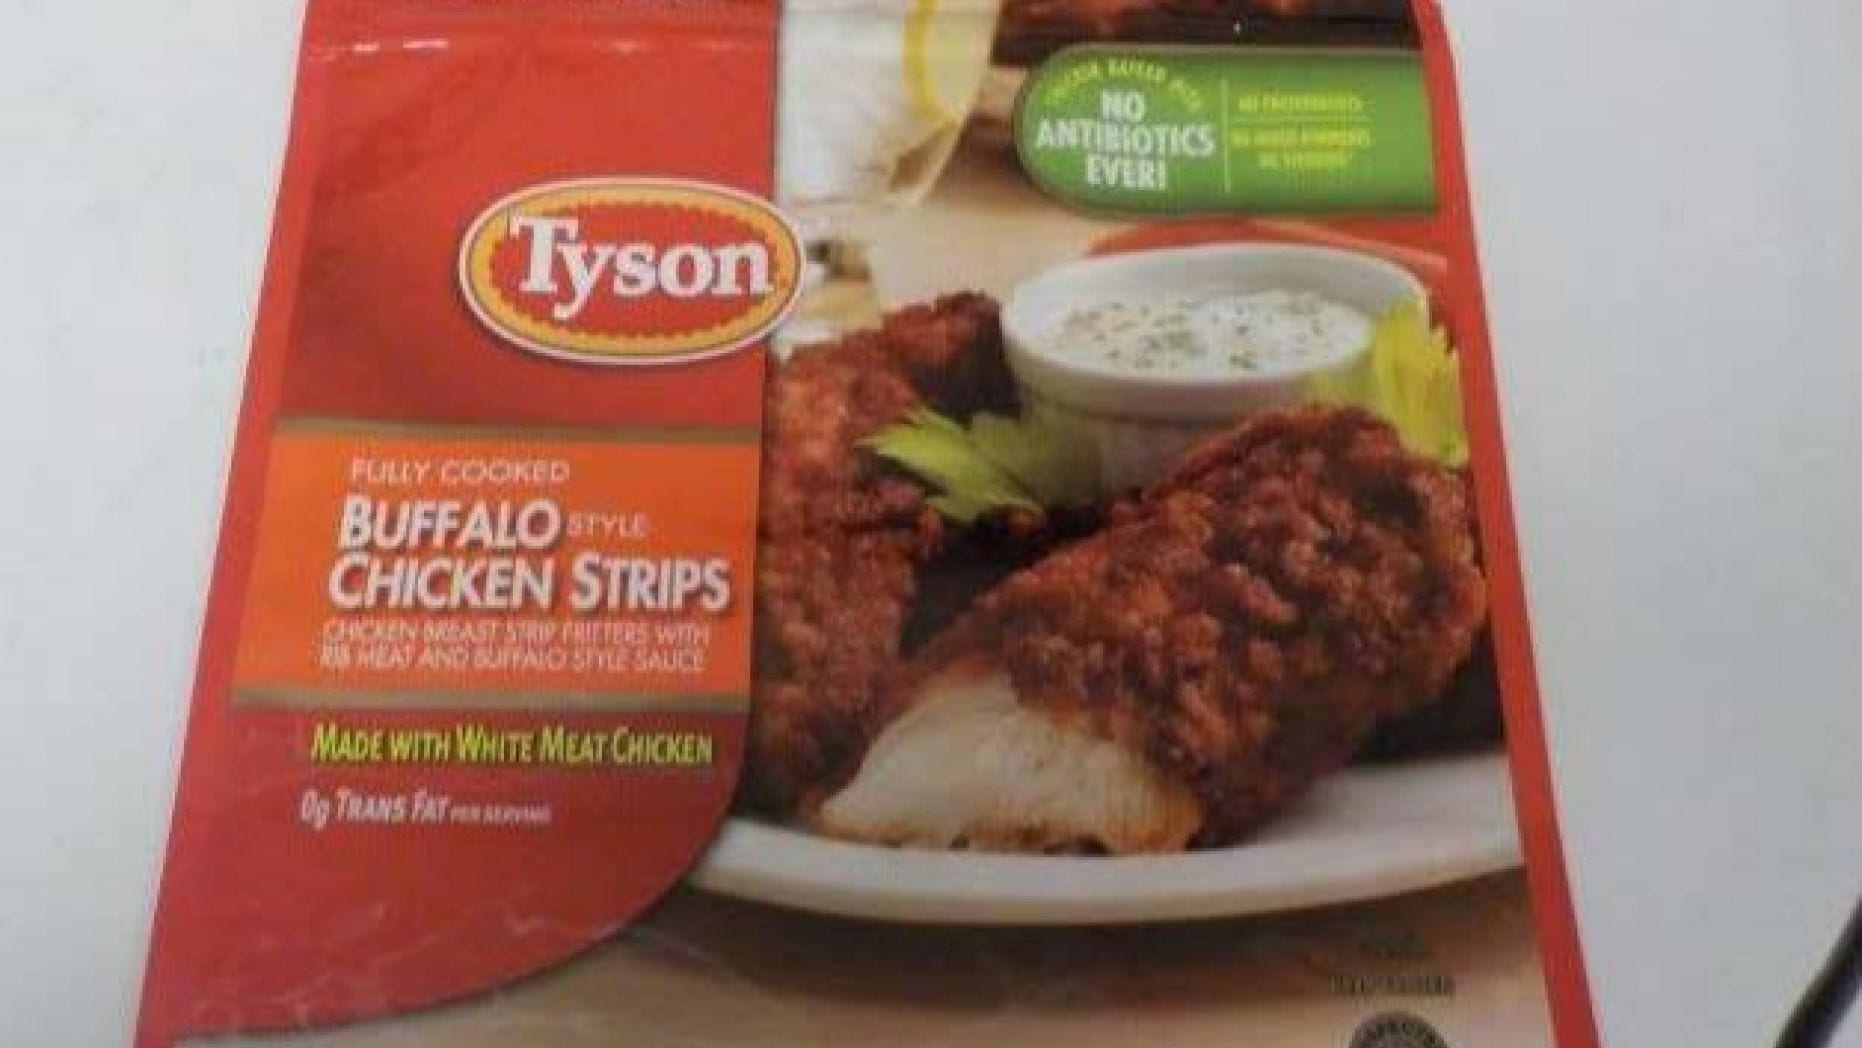 One of the recalled Tyson Chicken Strip products